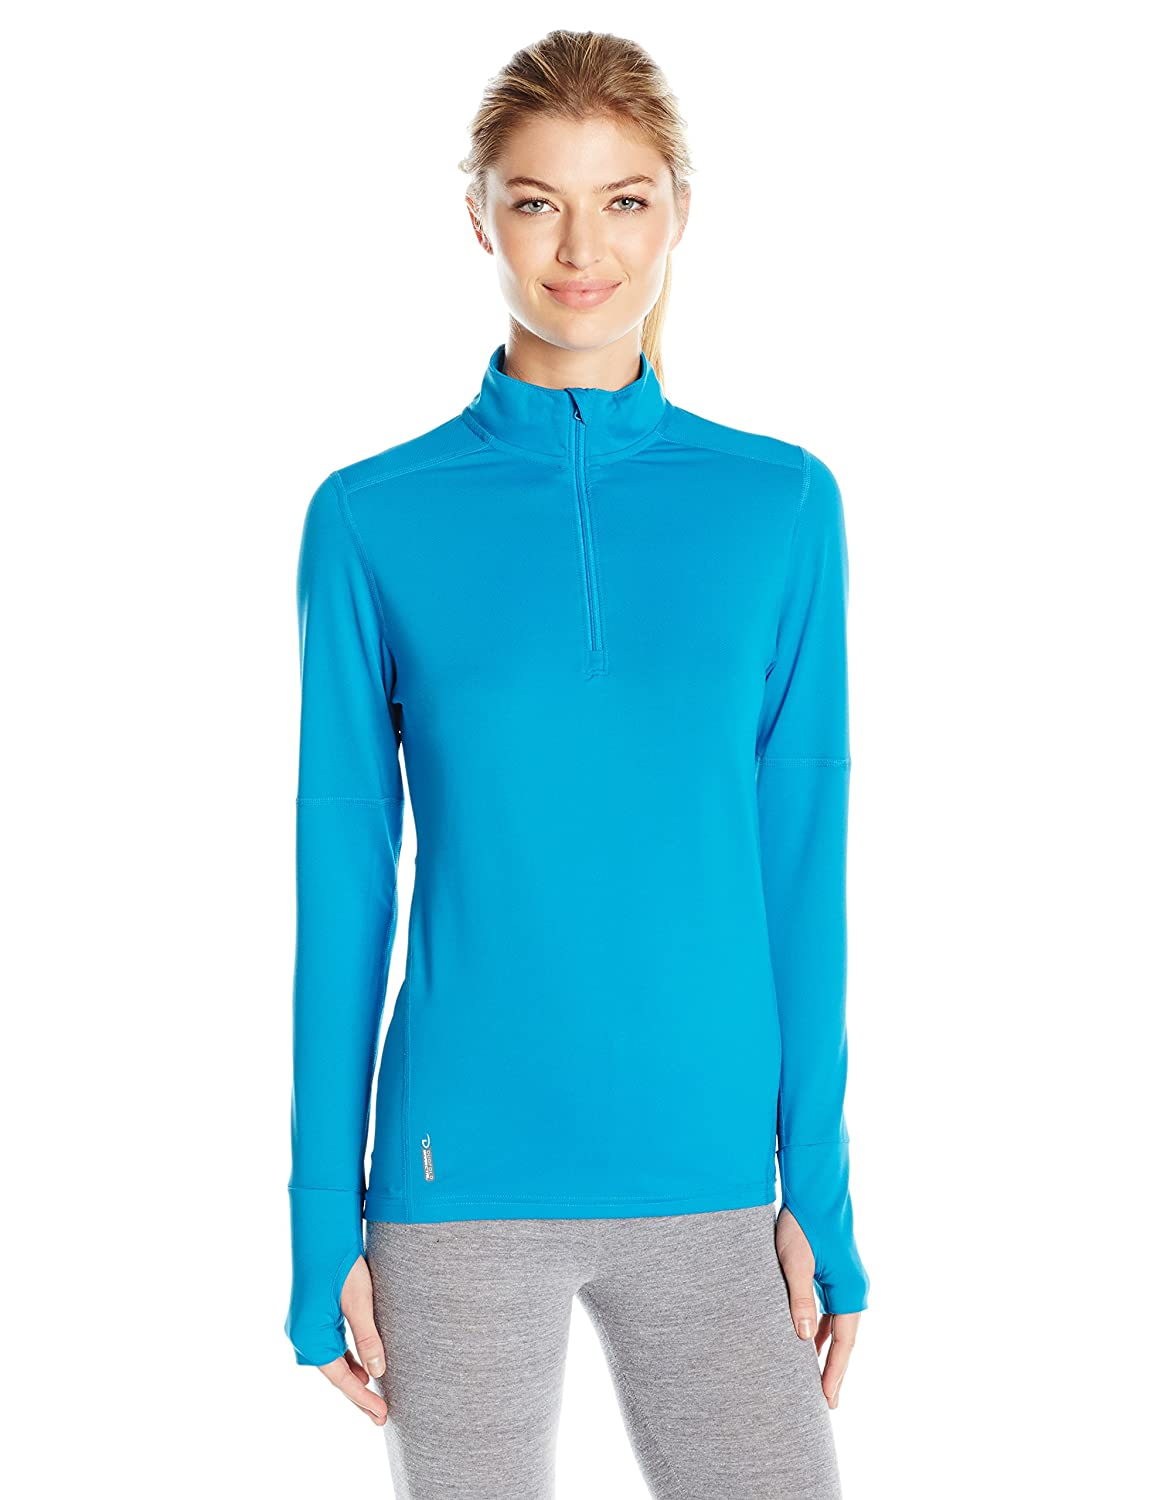 Layering /& Thermals KDC3Q Duofold Womens Light Weight Thermatrix Performance Thermal Quarter Zip Pullover Duofold Women/'s Sleepwear